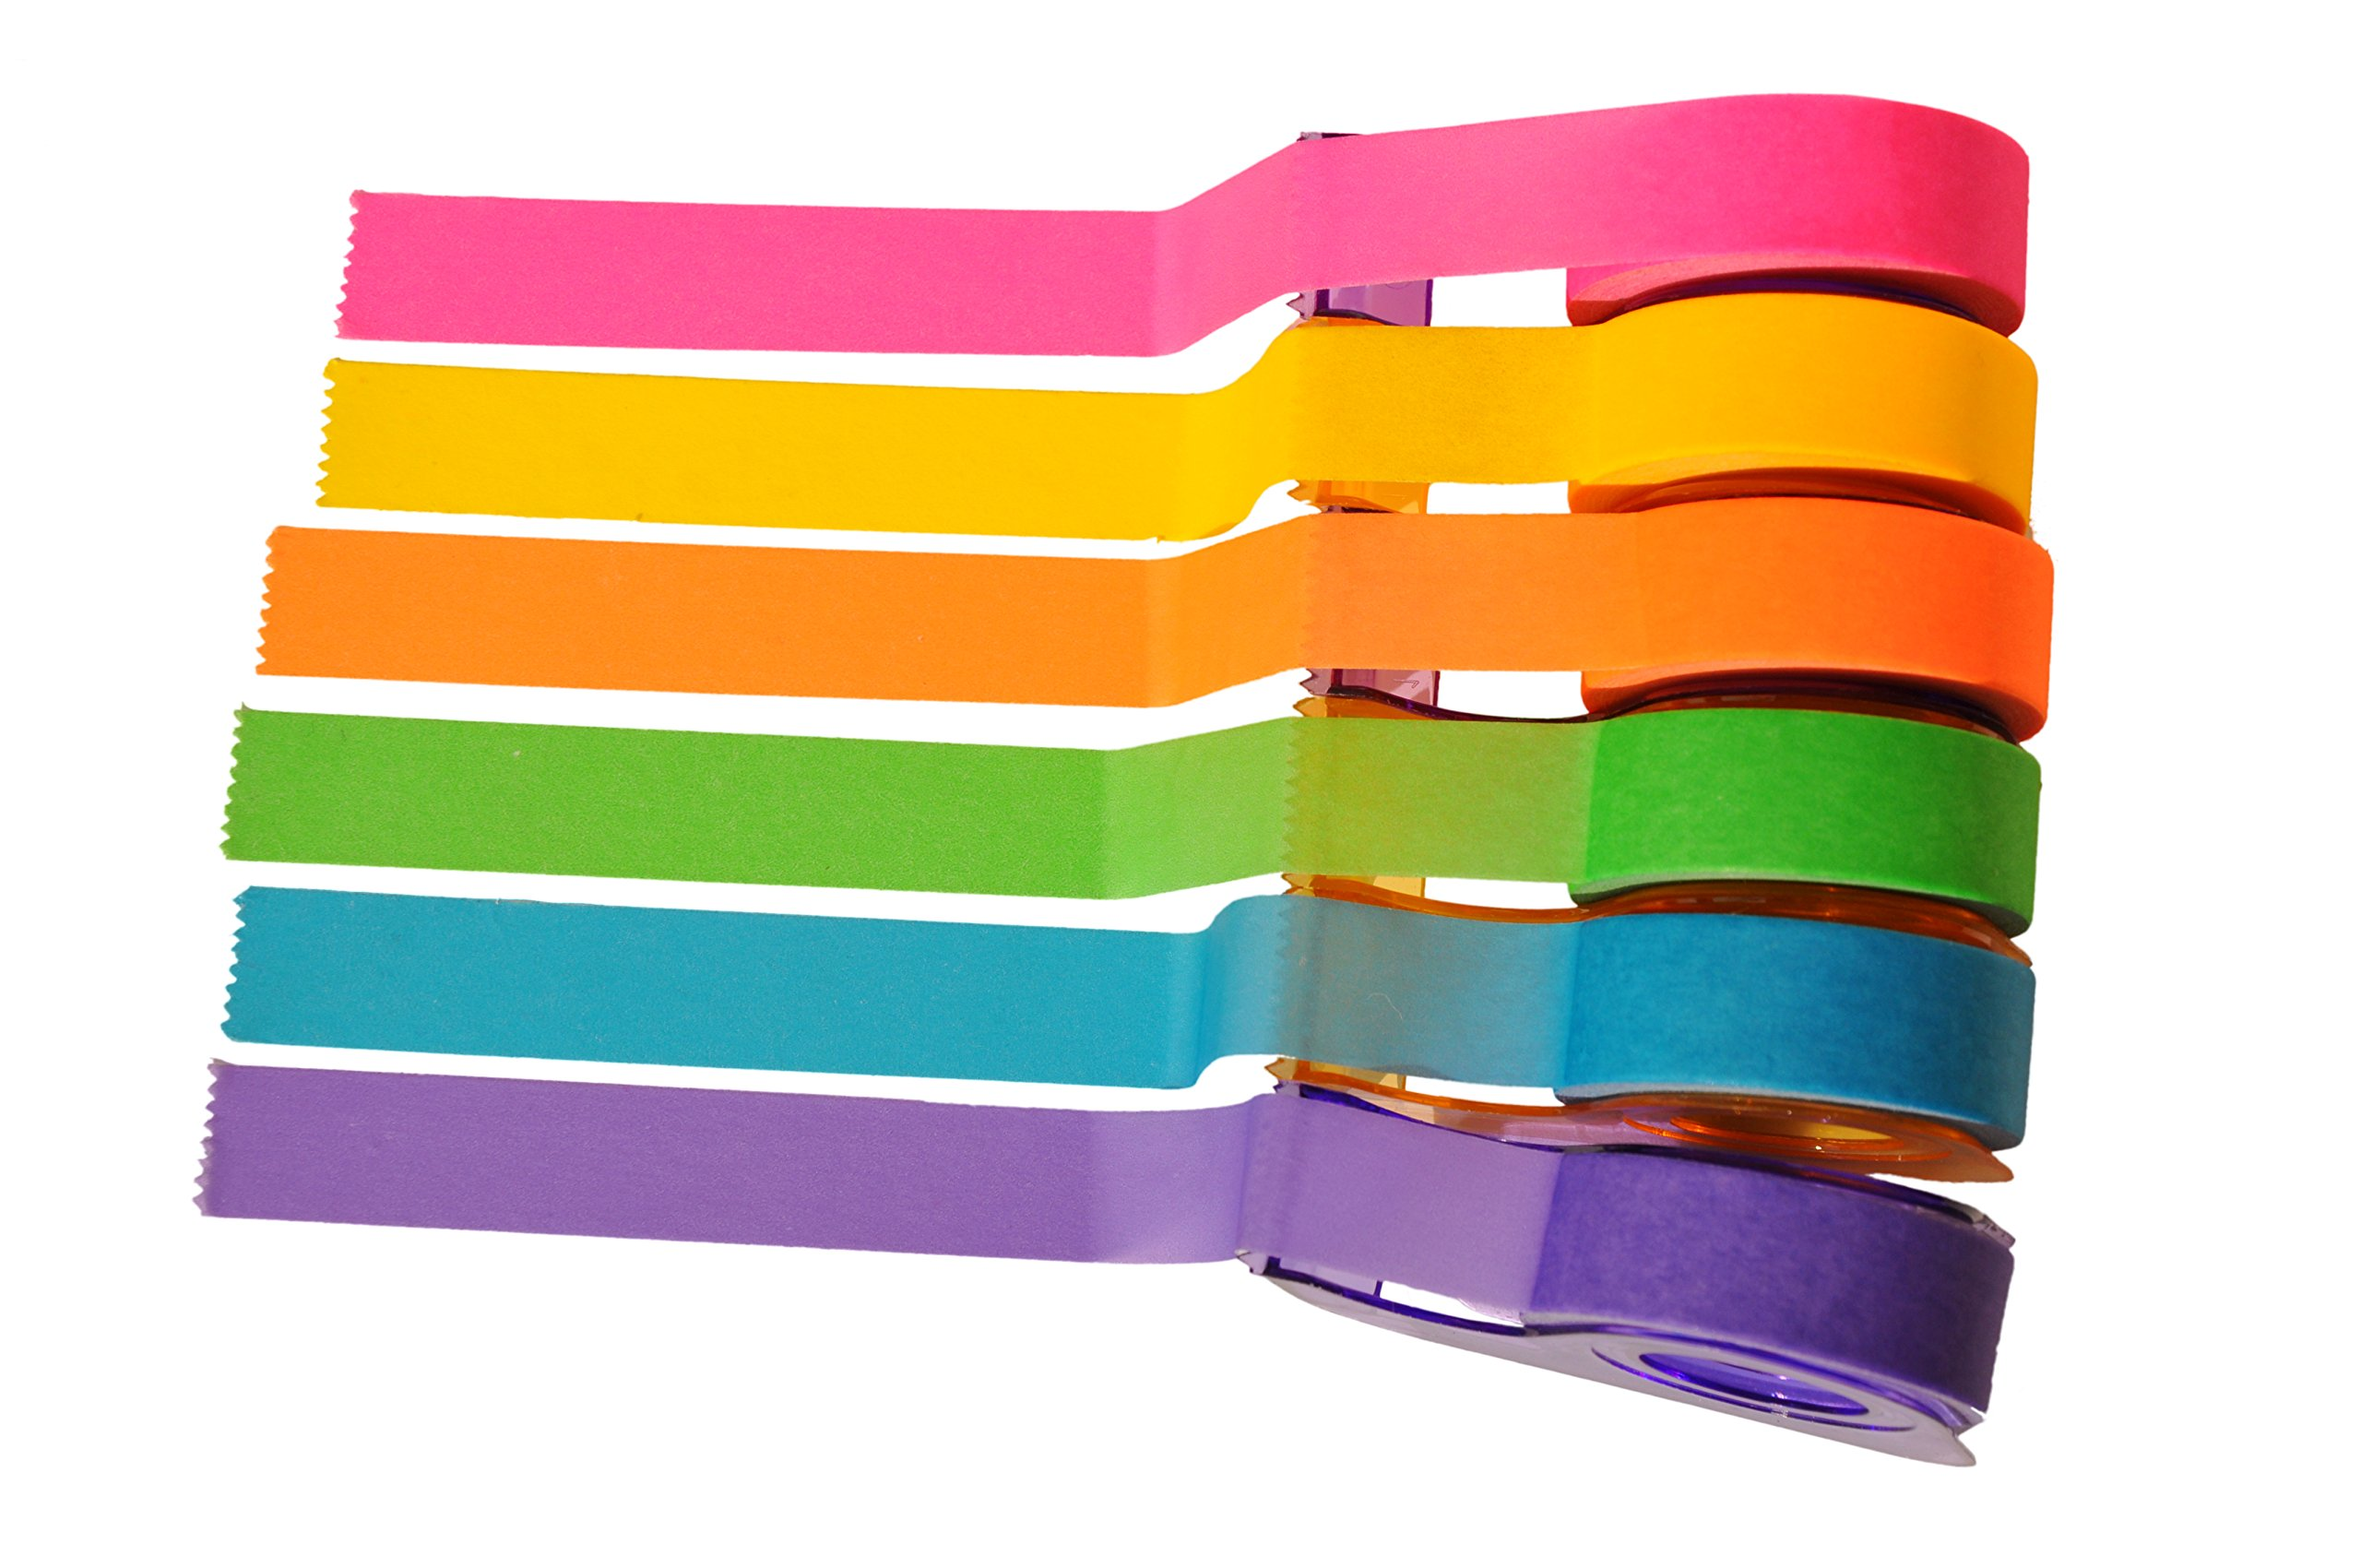 Homestic Removeable Highlighter Tape 0.6-inch x 393-inch, Fluorescent Colors (6 Colors with Dispenser) by Homestic (Image #3)